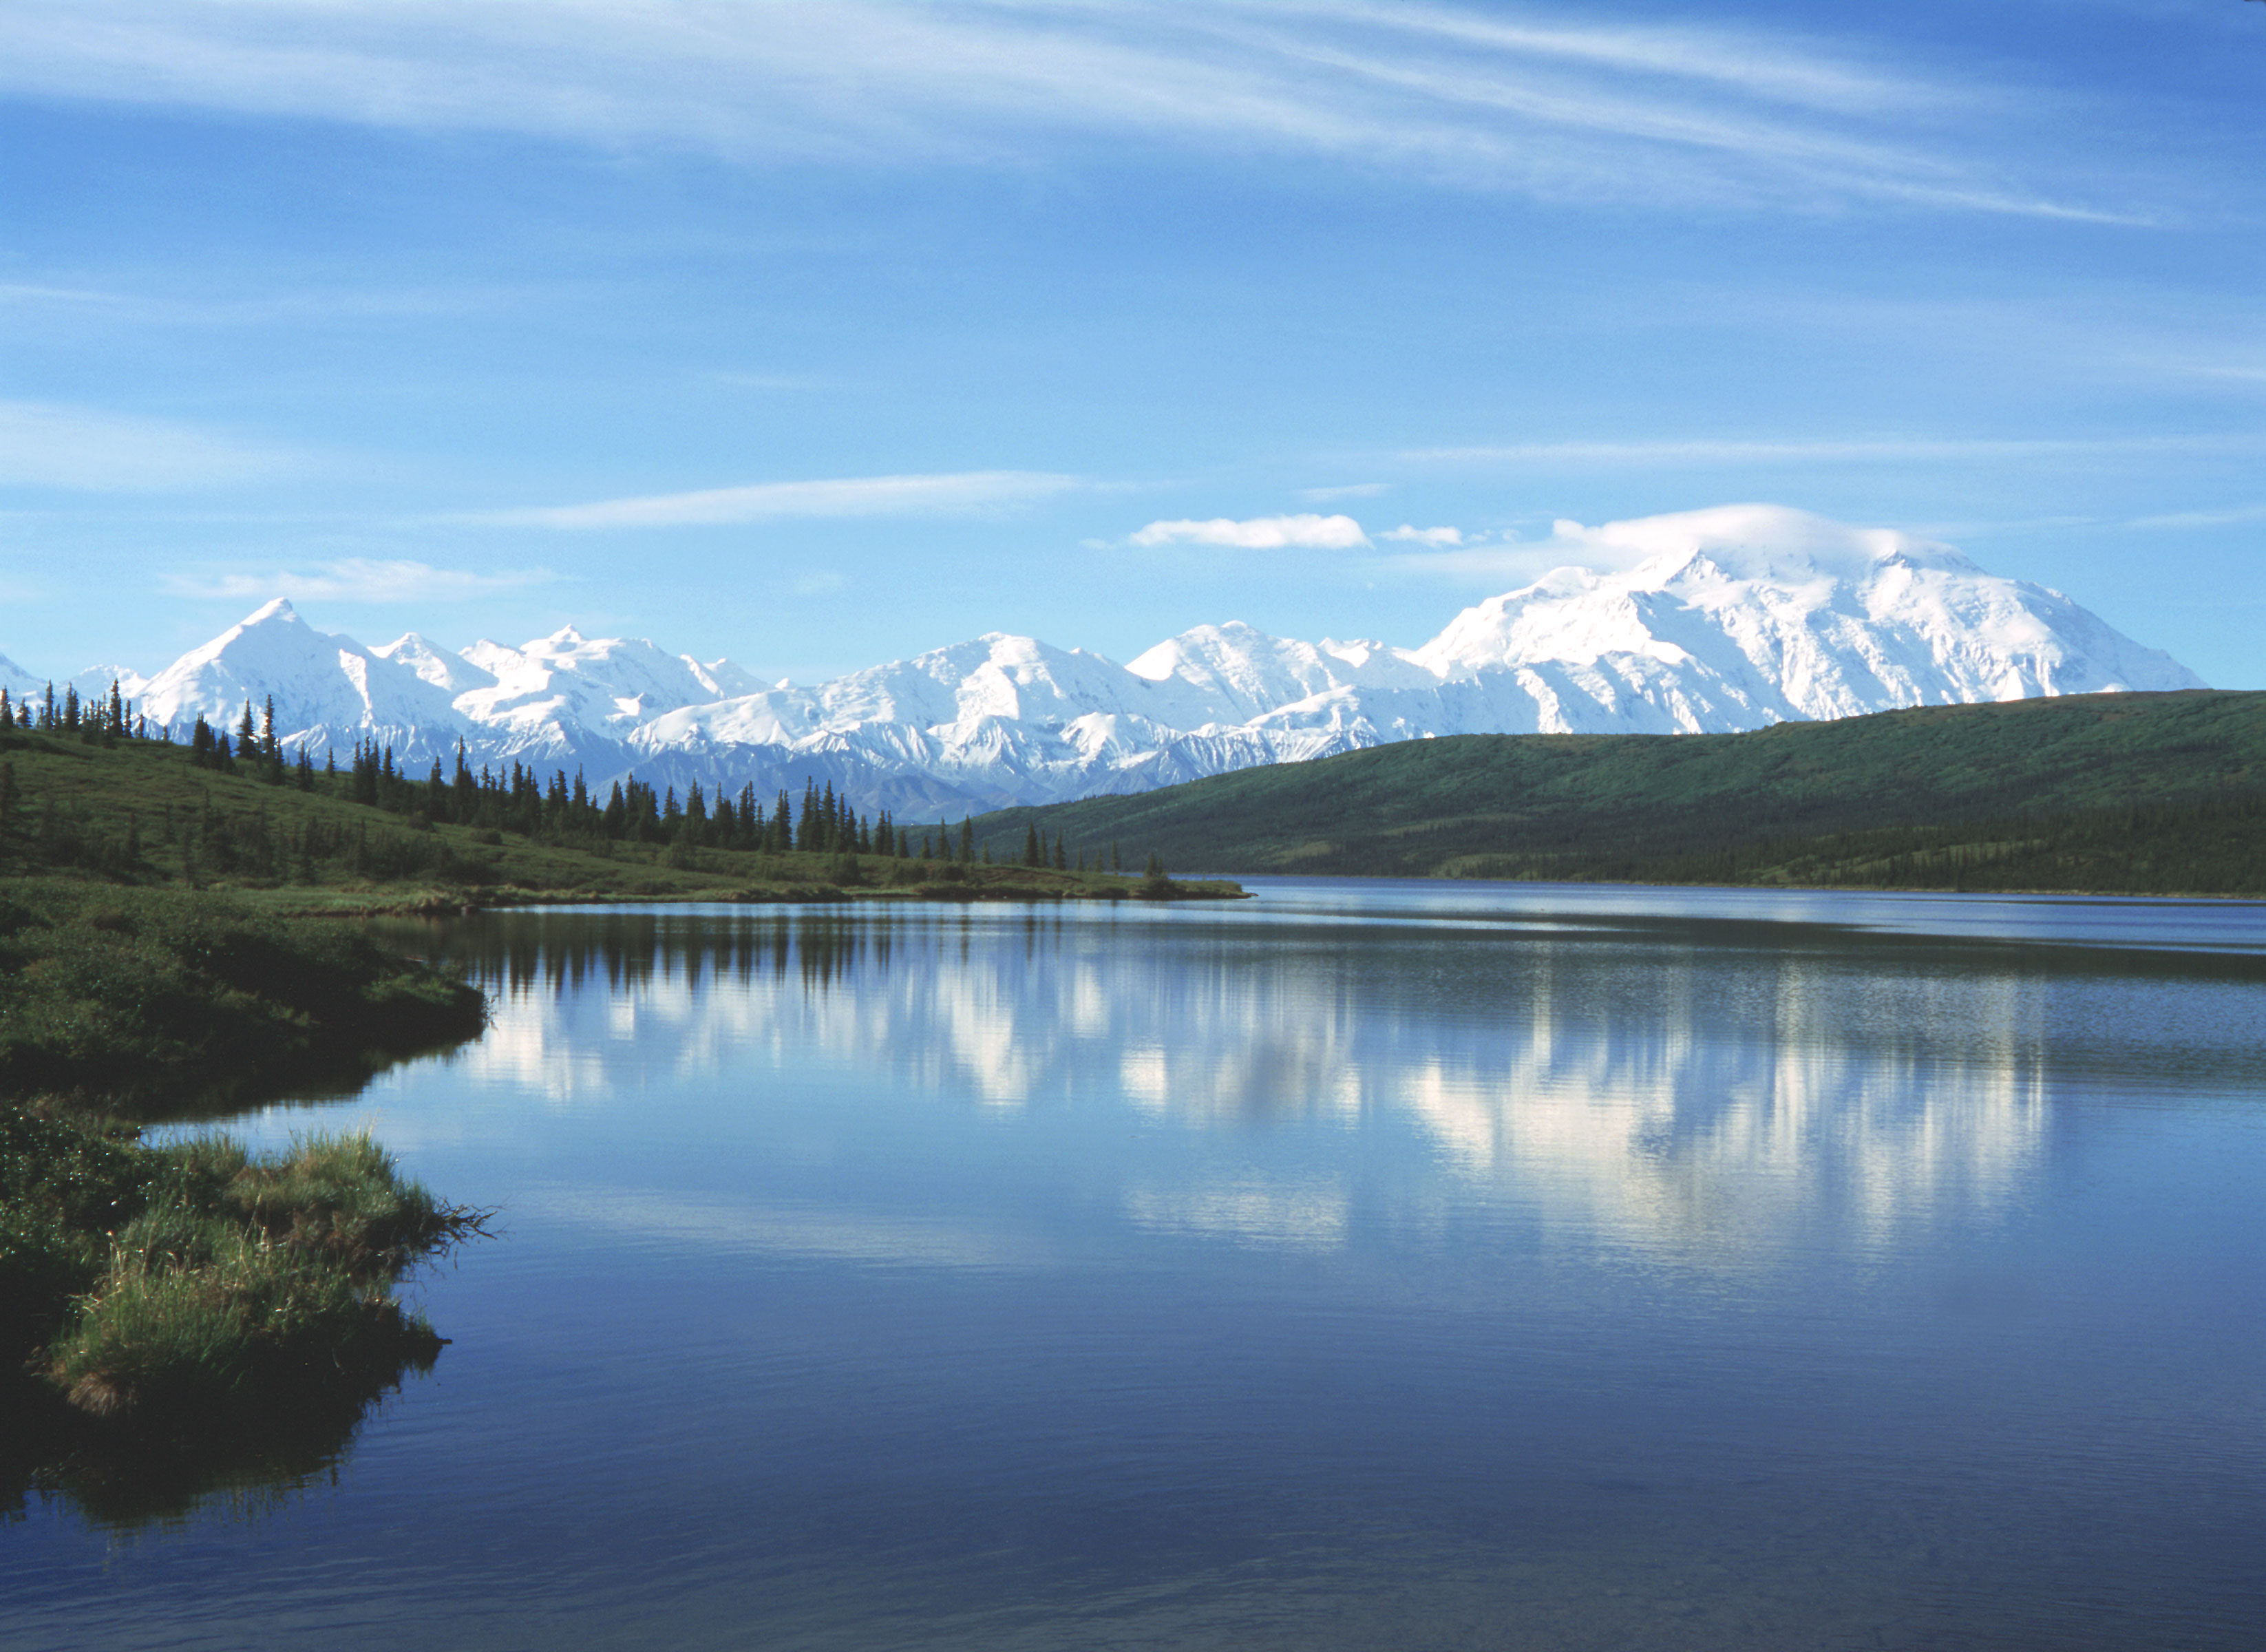 Mt McKinley and Wonder Lake viewed from Denali NP access road.